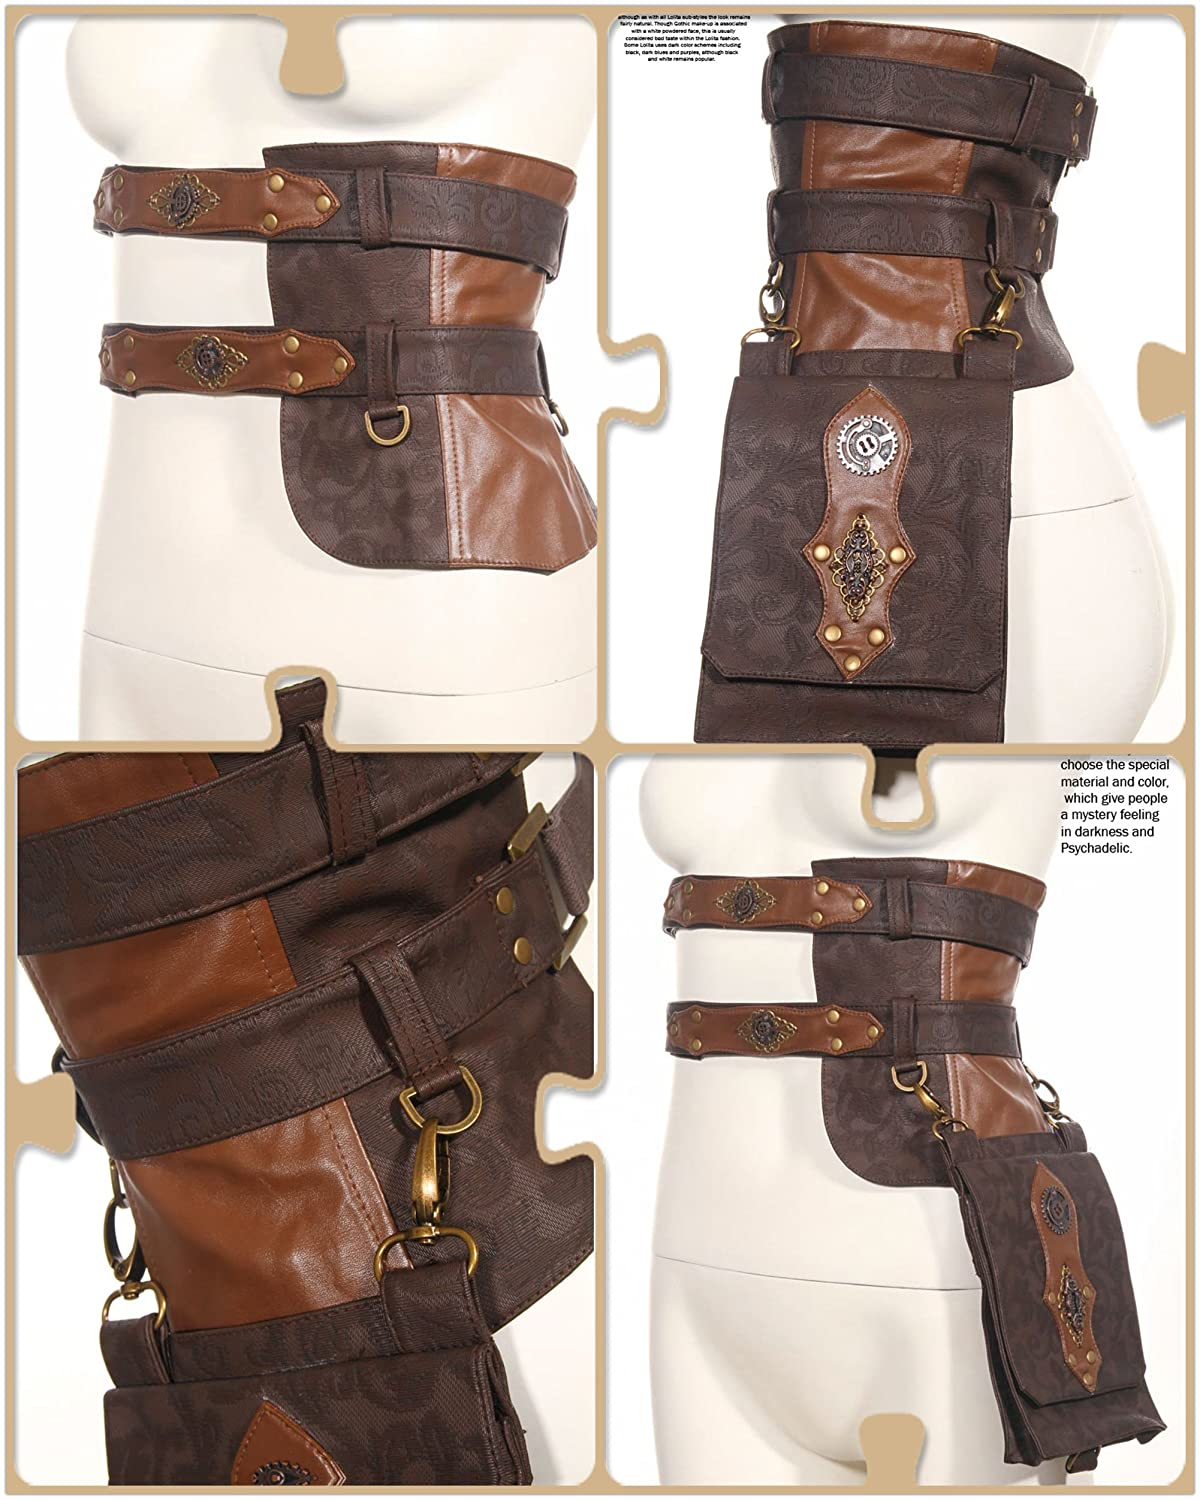 Steampunk Accessories | Goggles, Gears, Glasses, Guns, Mask Steampunk Cosplay Steam Punk Clothing Leather Utility Belt Girls Messenger Bags $52.22 AT vintagedancer.com